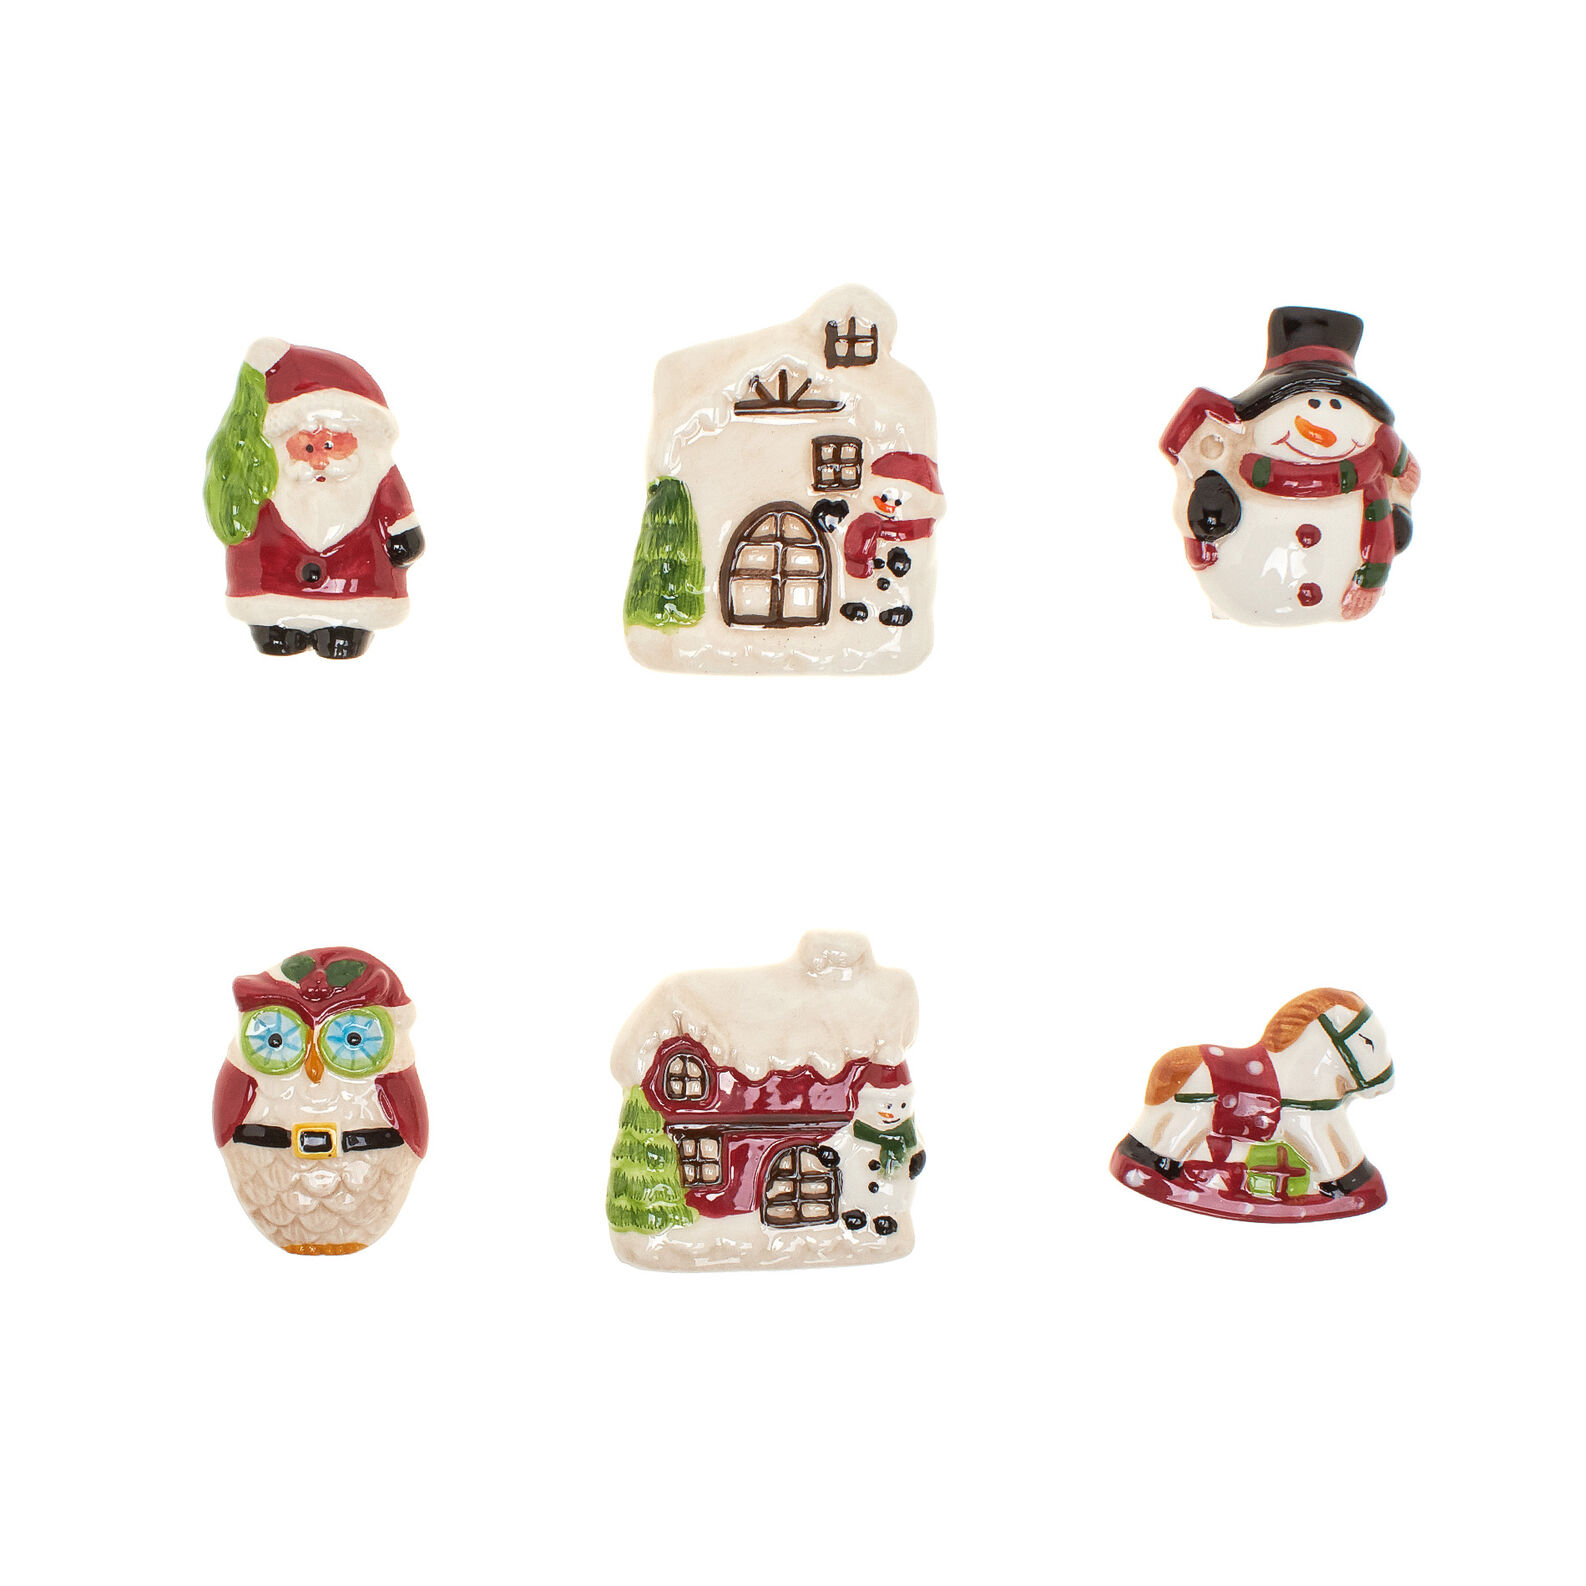 Christmas-shaped ceramic magnets